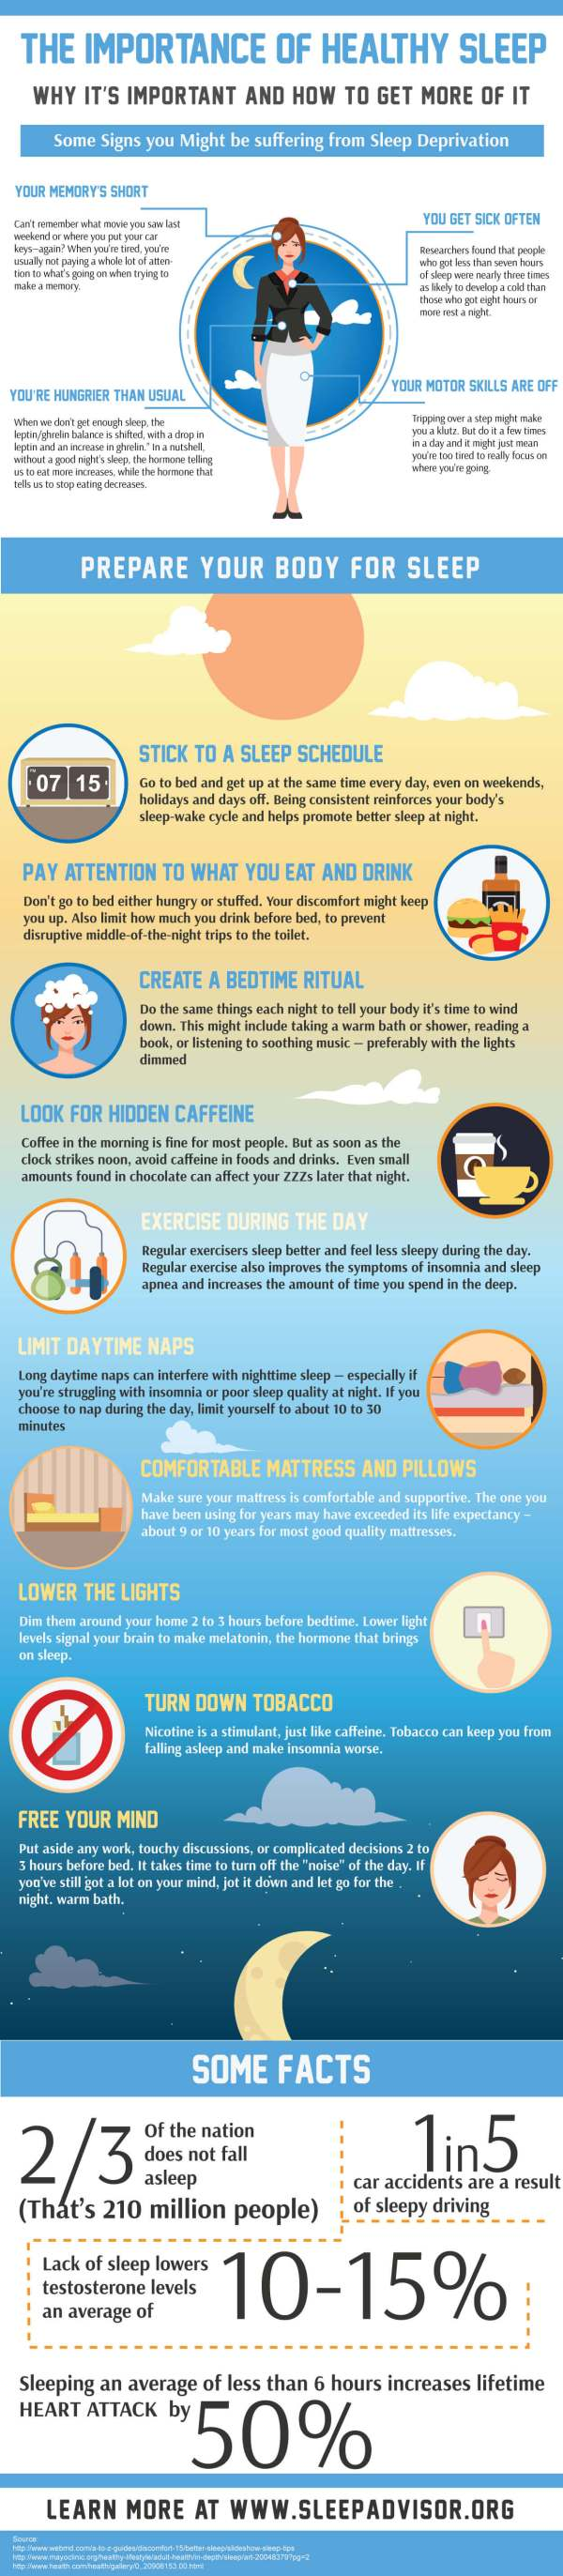 The-importance-of-healthy-sleep-infographic